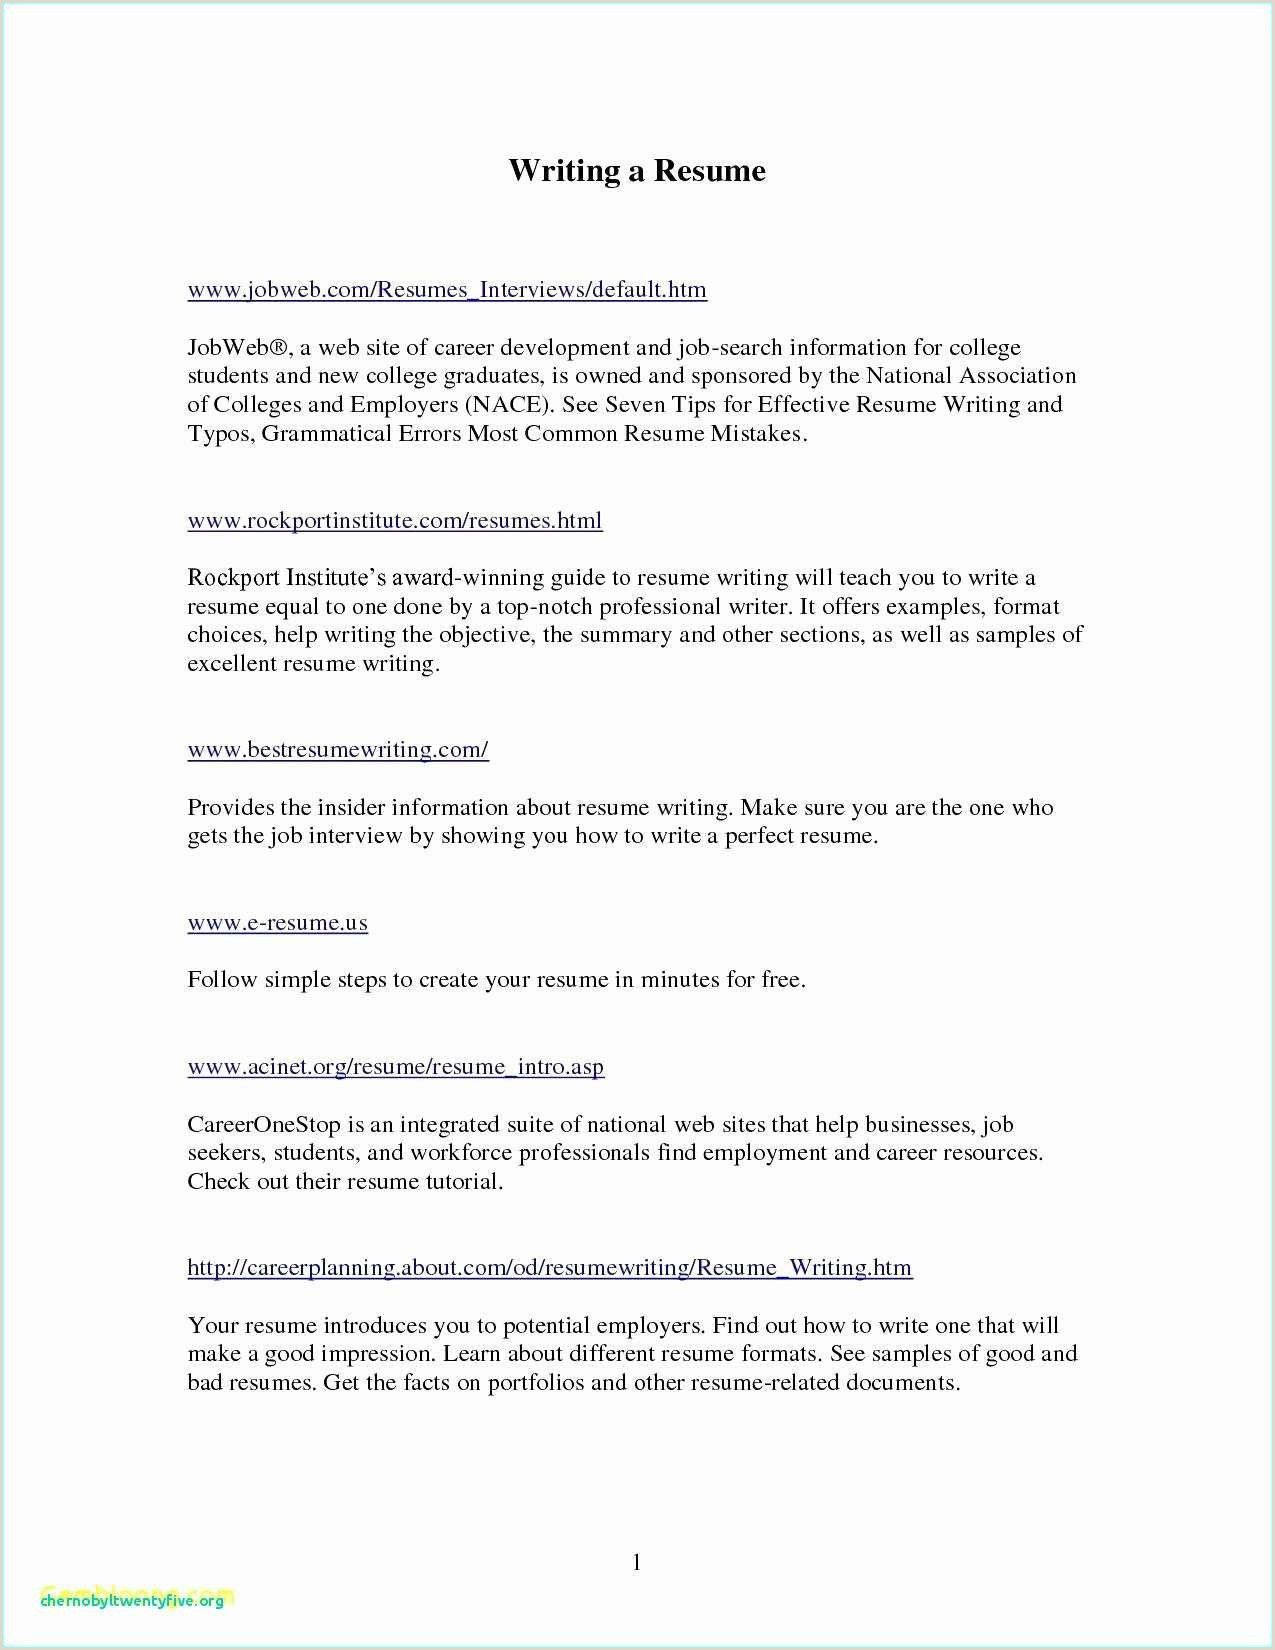 What to include in your Graduate Nurse Resume